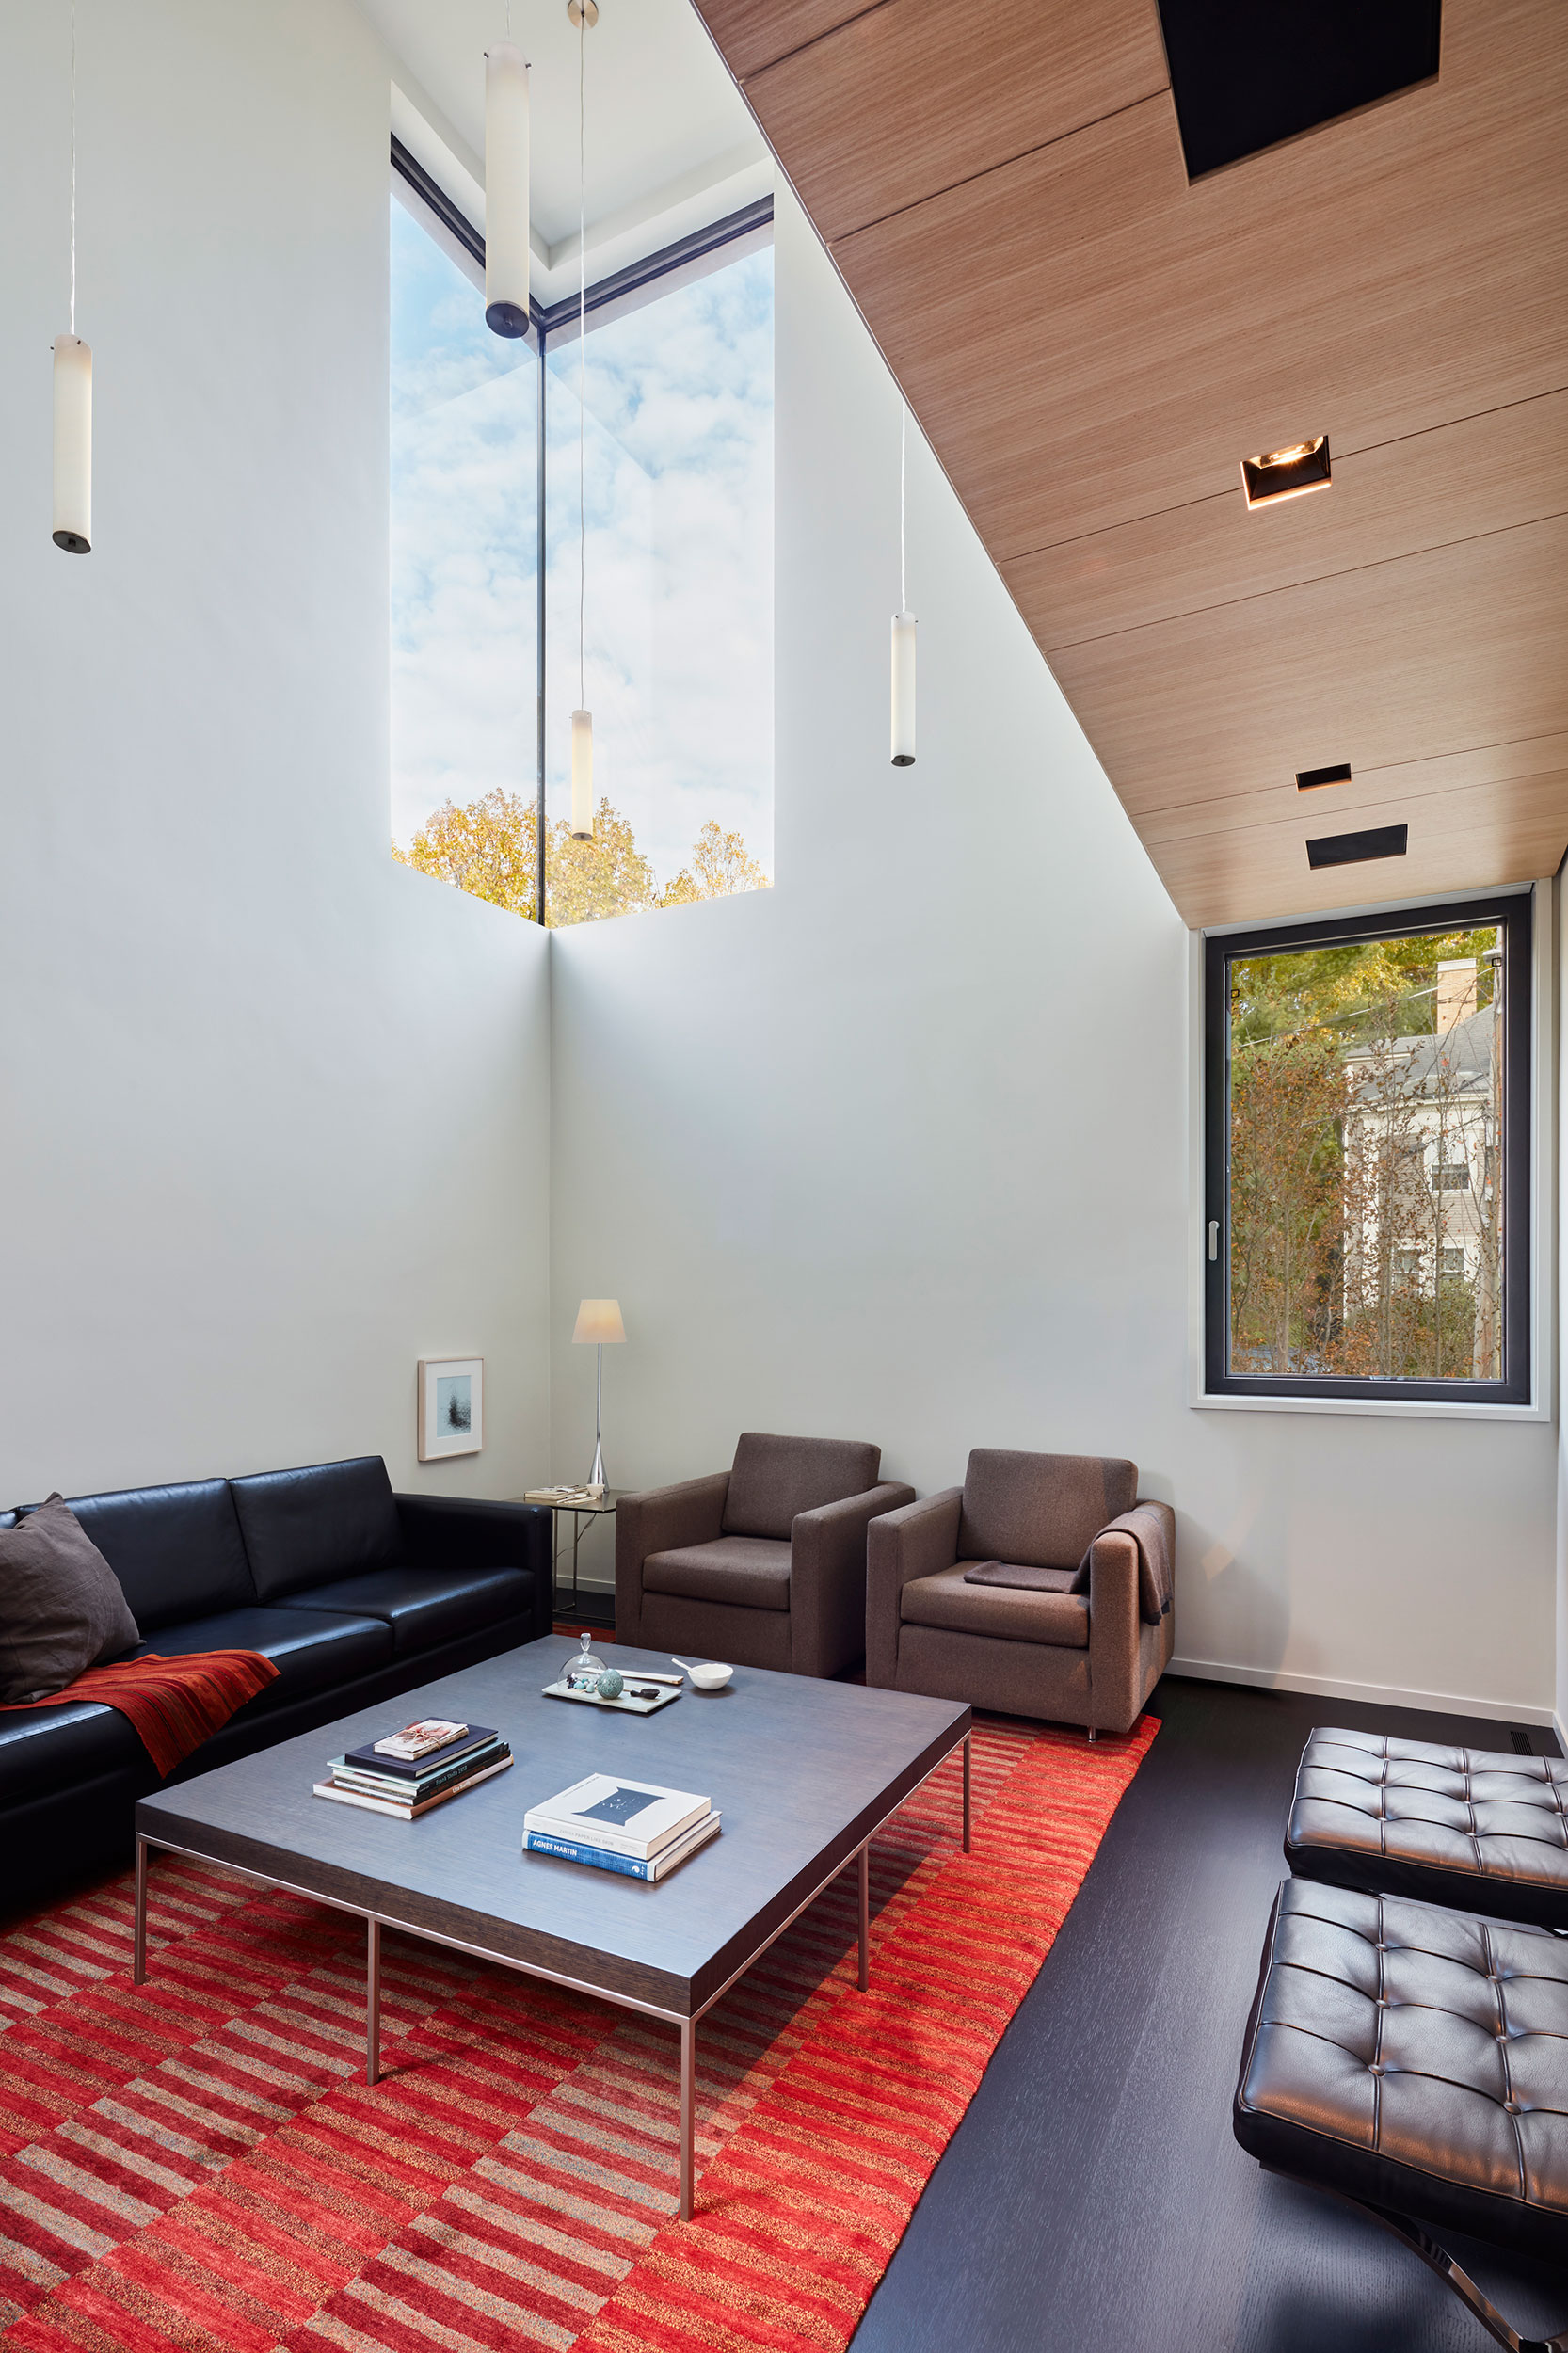 Courtyard House by Anmahian Winton Architects, in Cambridge, MA. Photo: Jane Messinger.